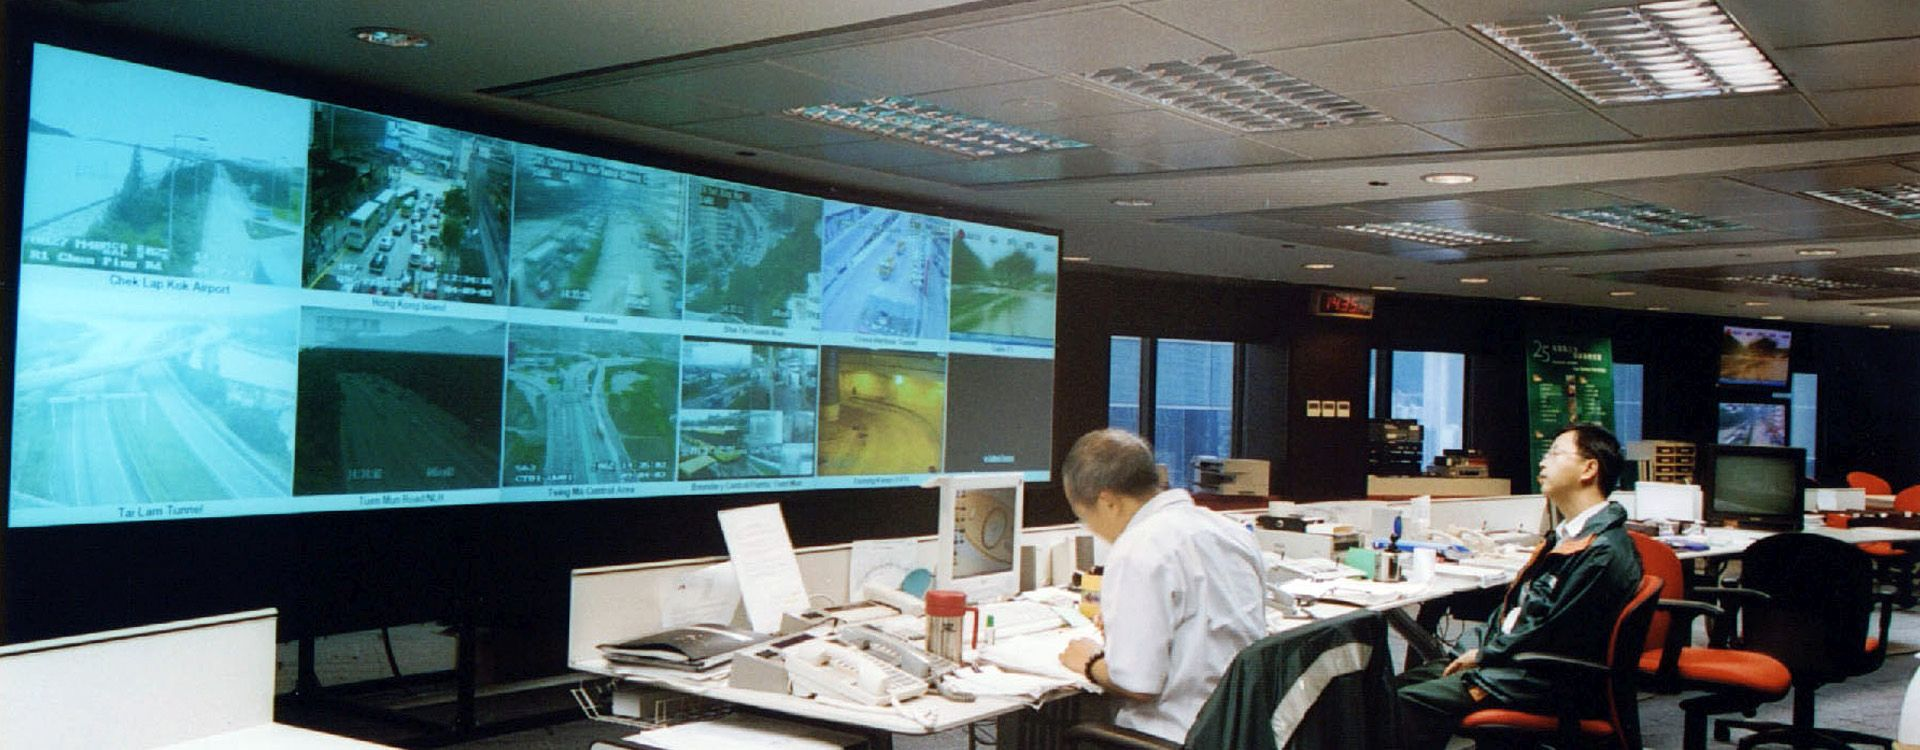 bnr-traffic control centre